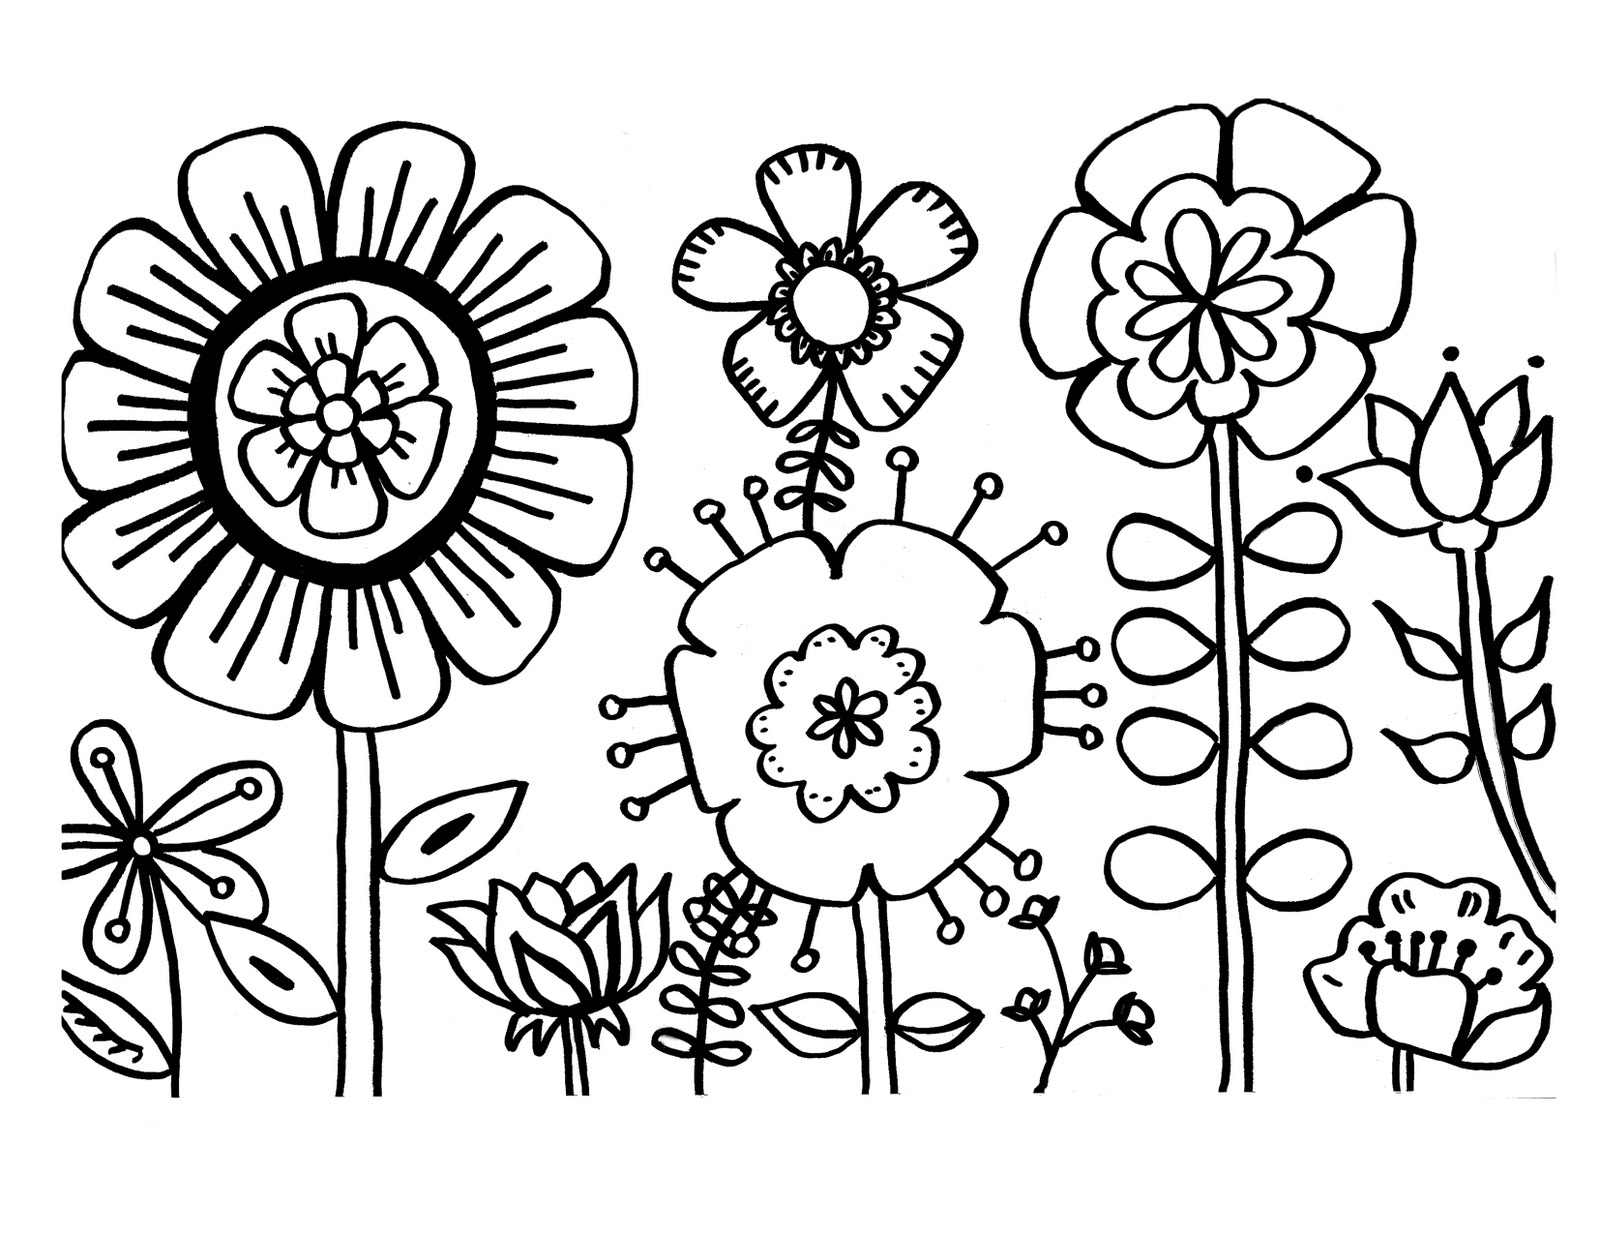 printable flowers coloring pages detailed flower coloring pages to download and print for free flowers coloring pages printable